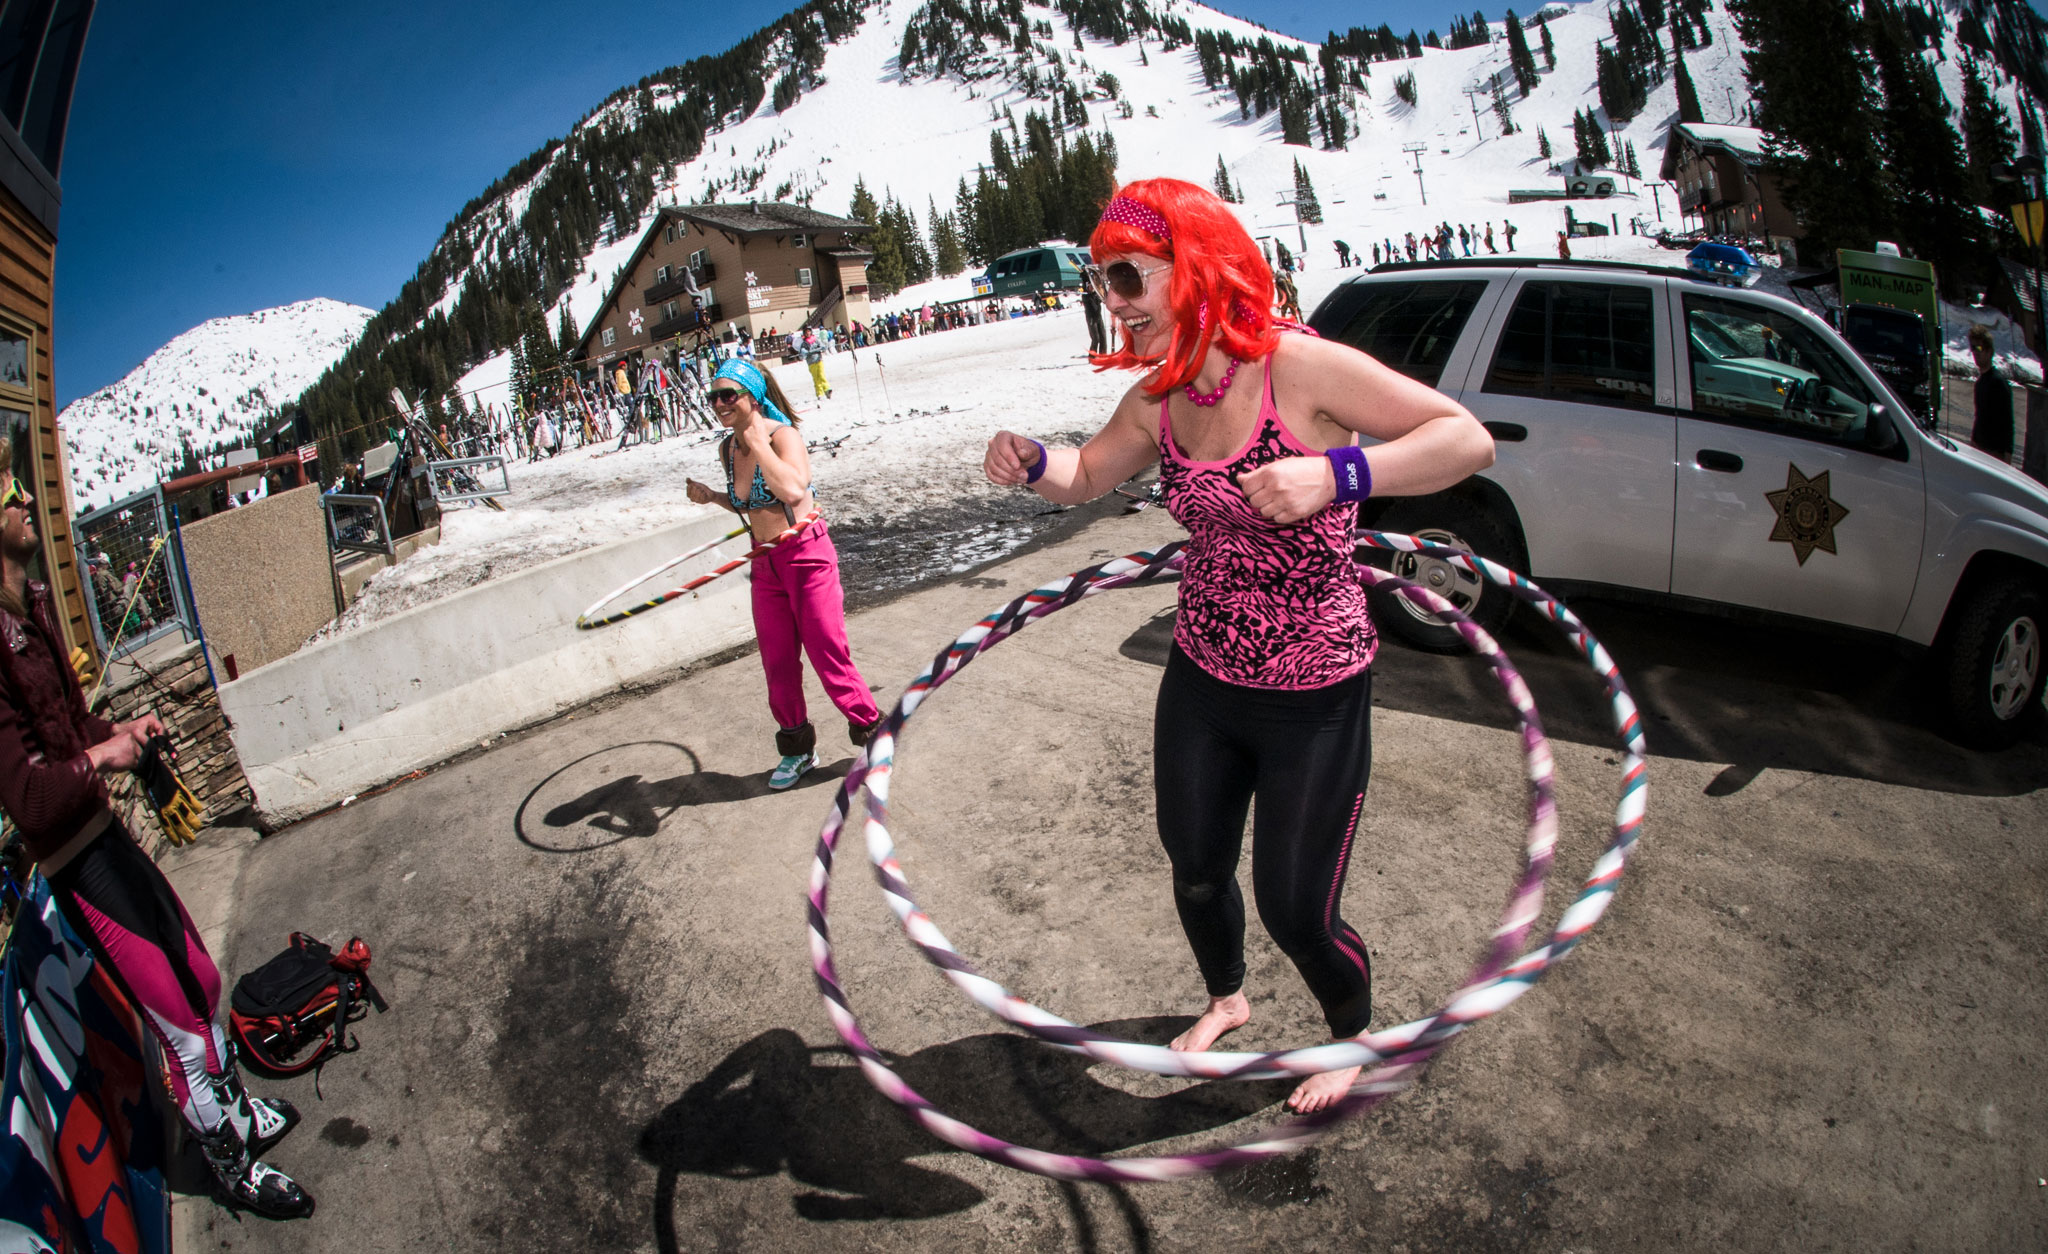 Springtime at ski resorts brings warm weather, corn snow, skiing in costumes, and big parties and festivals. These are pro skier Griffin Post's picks for his 12 favorite springtime festivals at ski resorts around the world.